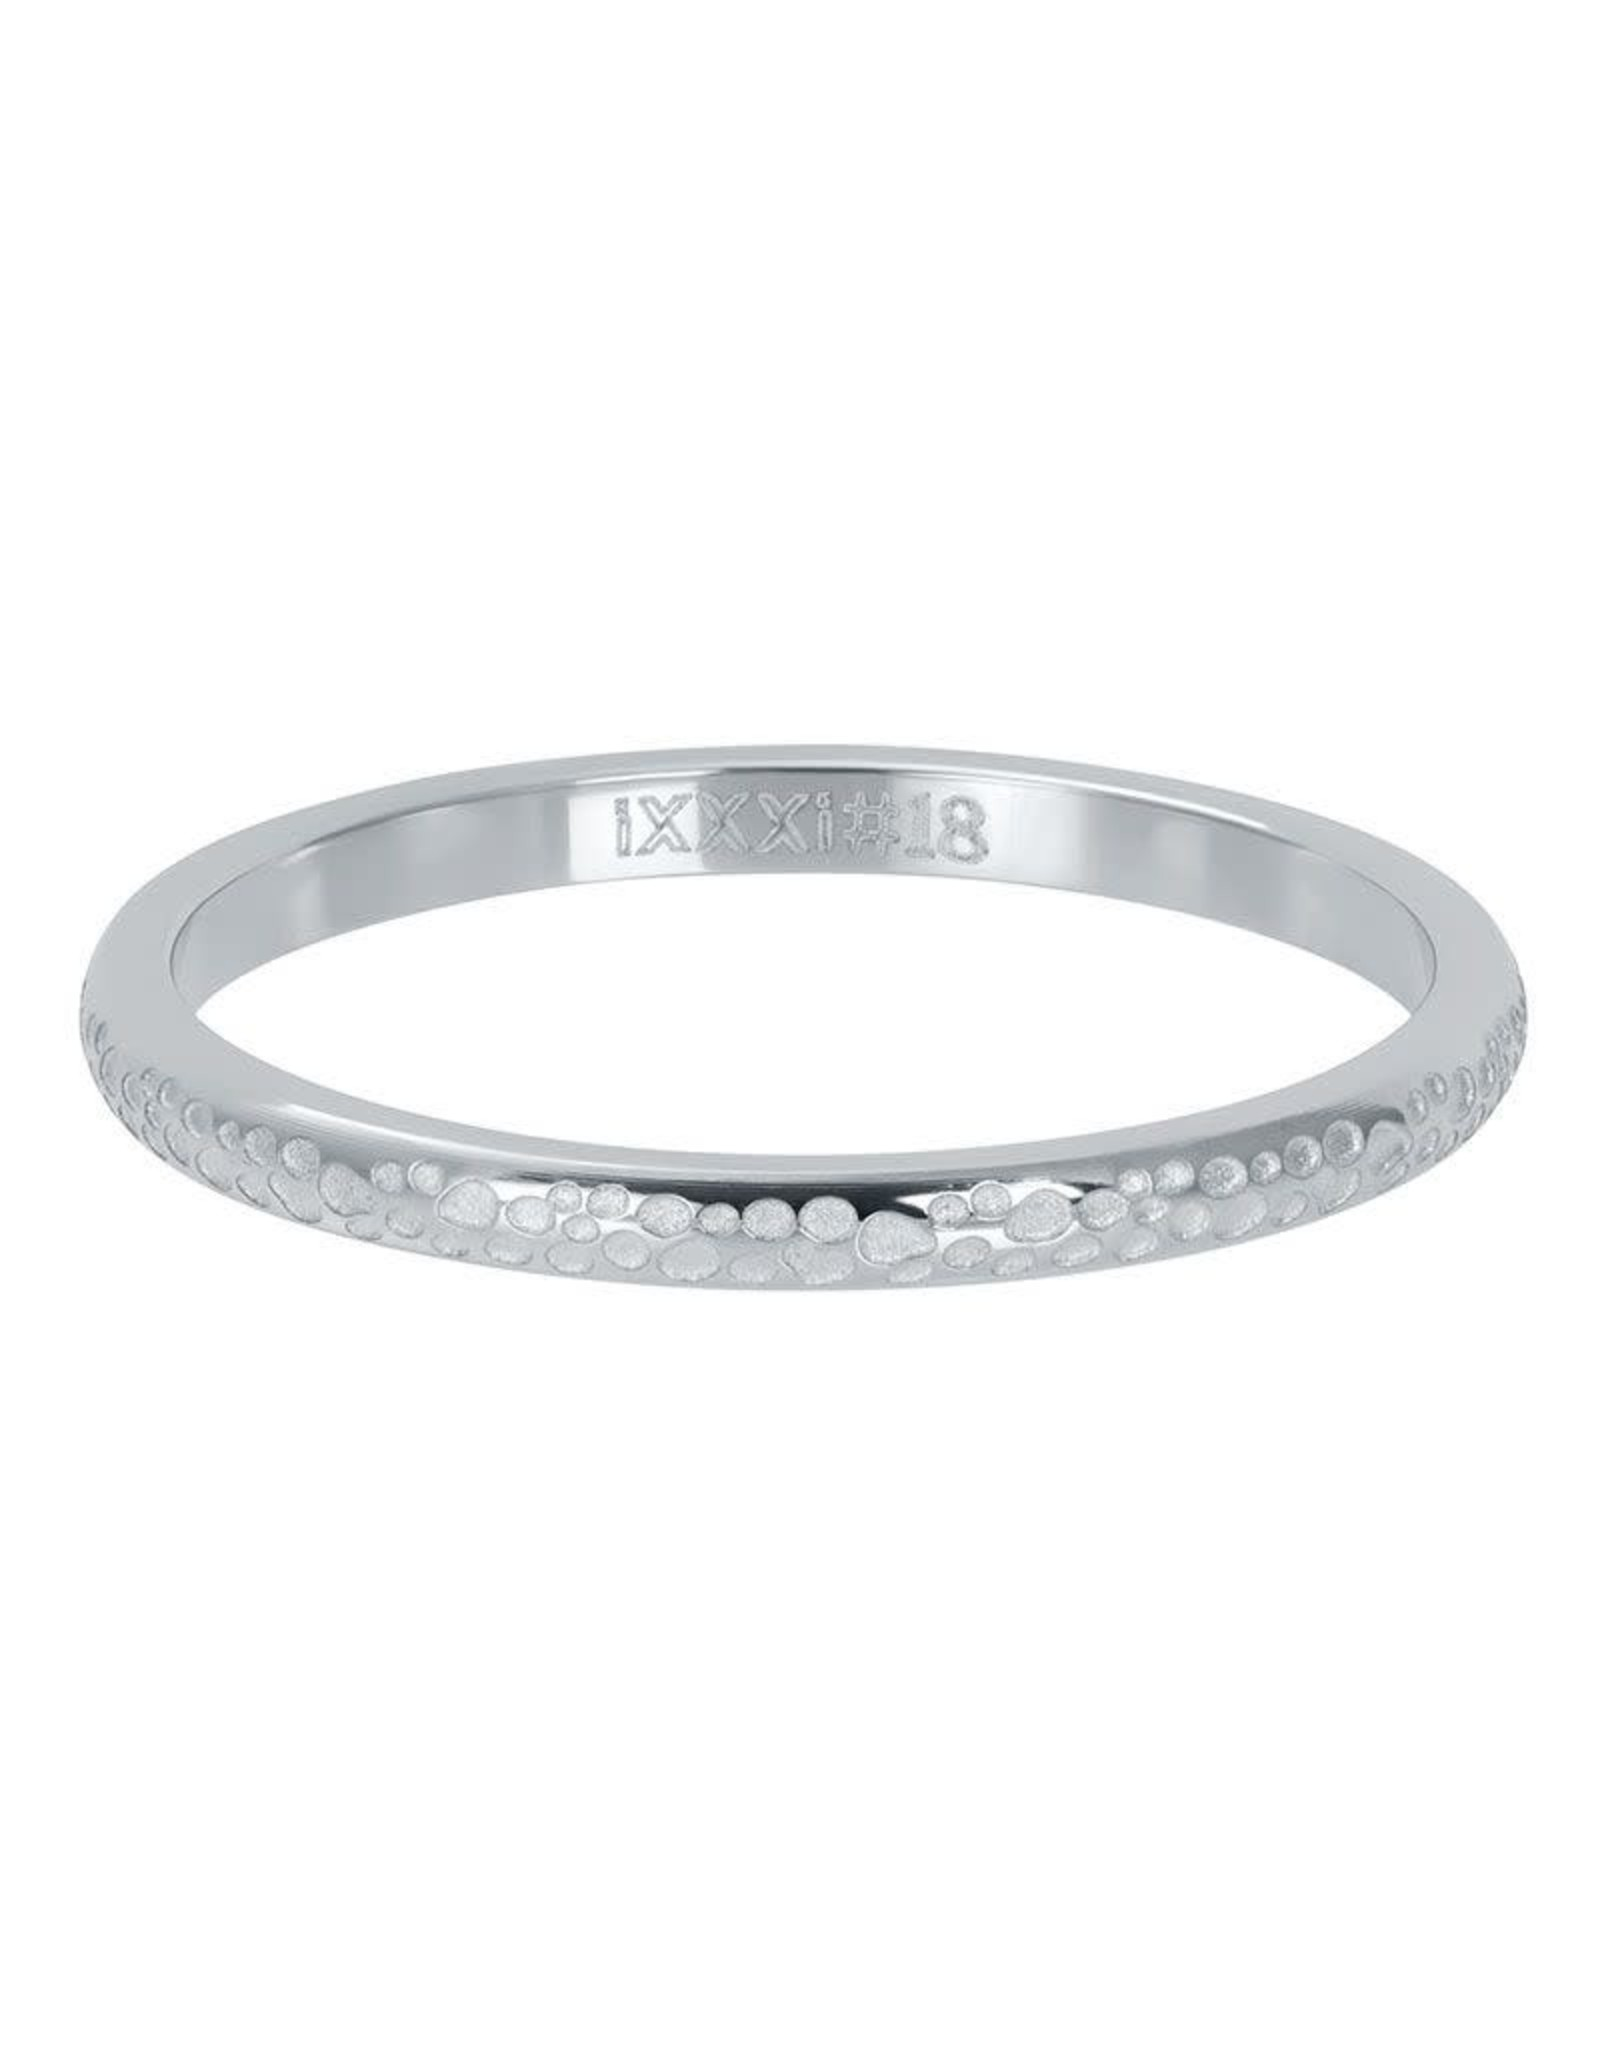 IXXXI IXXXI Dancer ring Silver